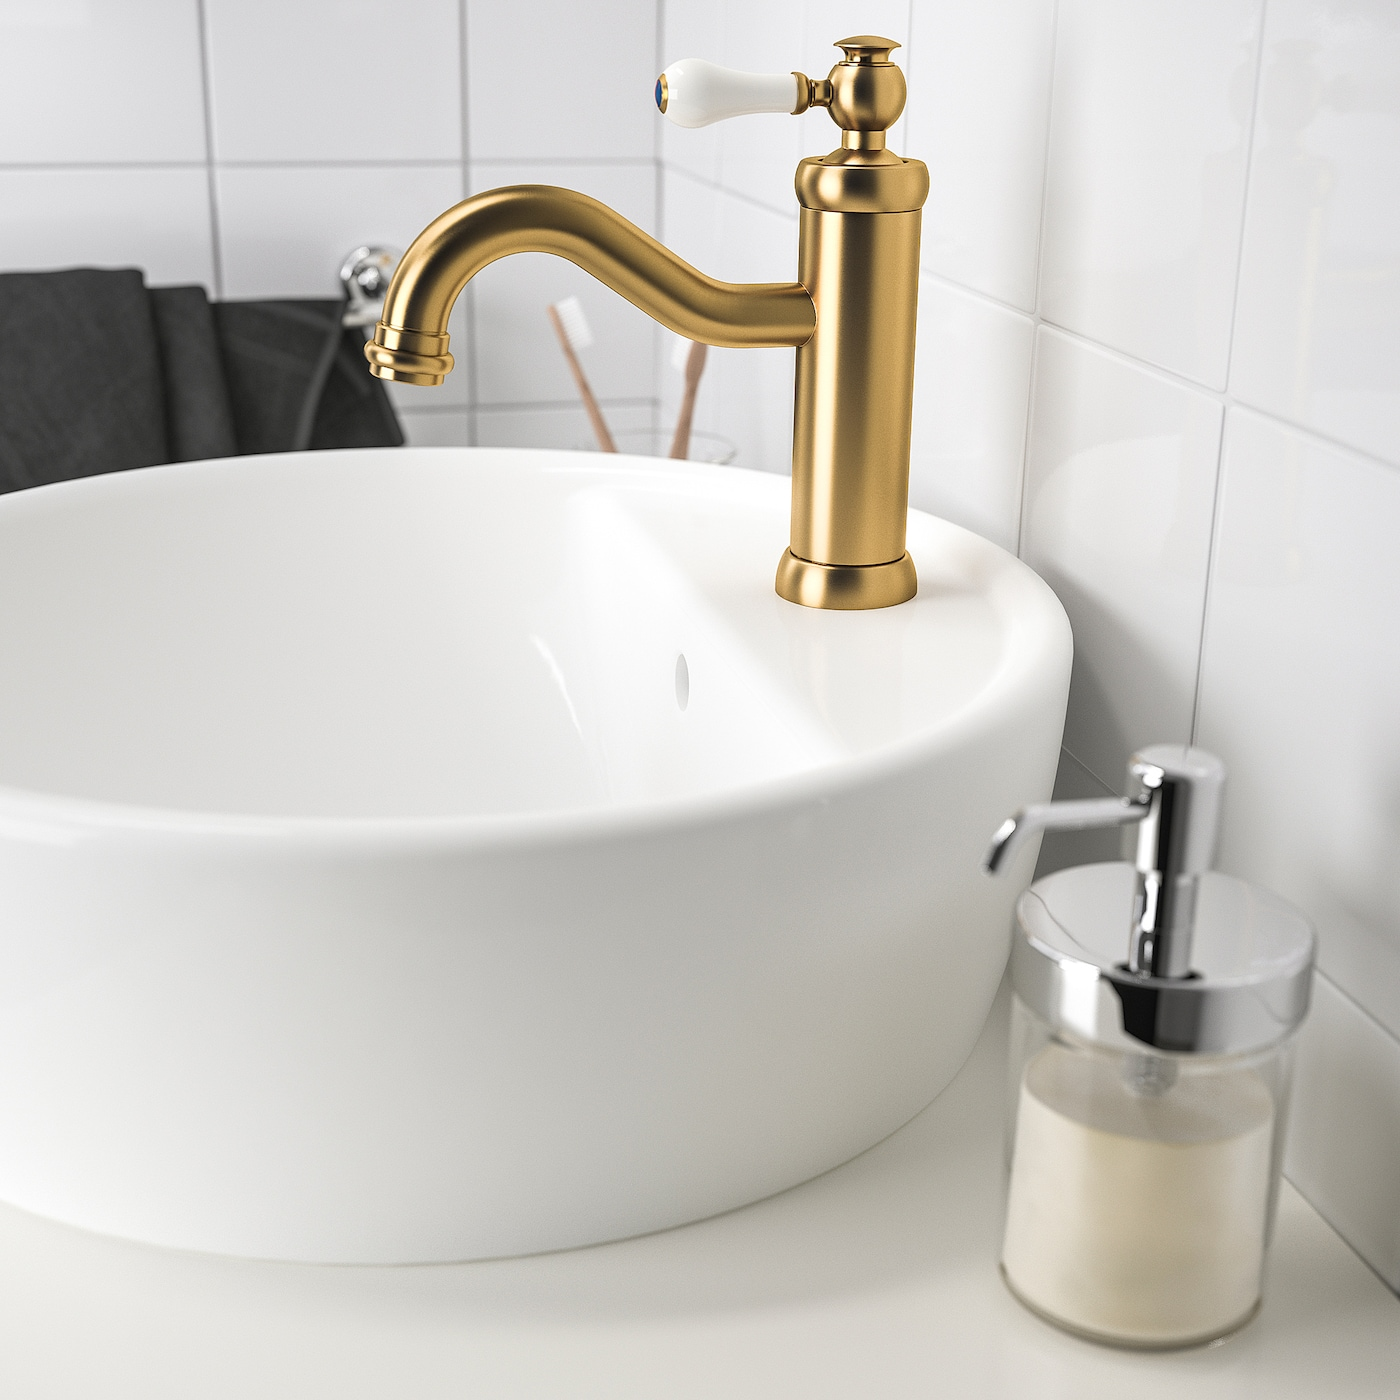 HAMNSKÄR bath faucet with strainer brass color 7 1/2 ""